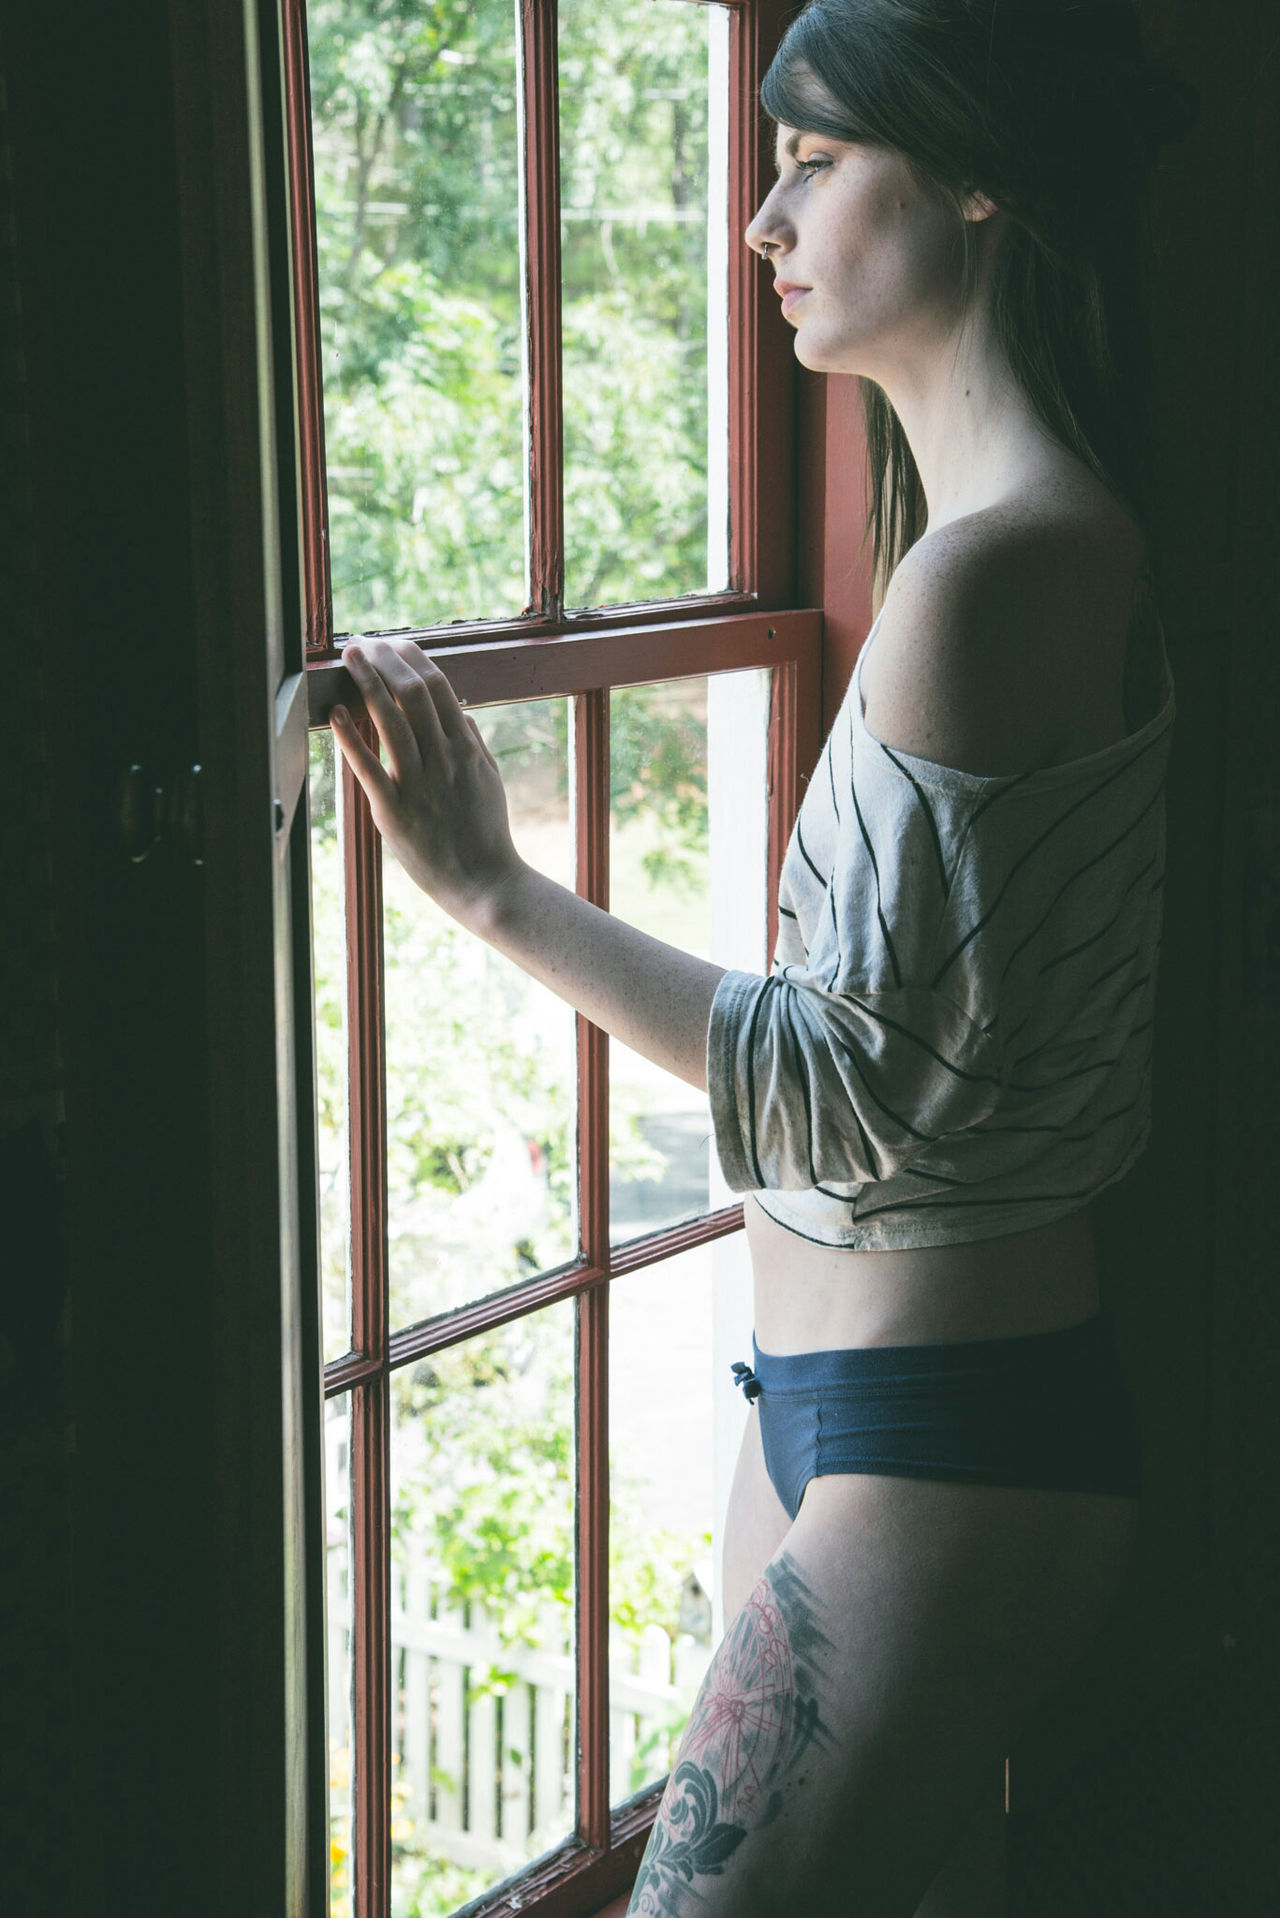 Studying the light - Two Pop Beautiful Woman Bedroom EyeEm Best Shots Daylight Daytime Window Black Underwear Photo Shoot Undressed Photo Project Beautiful Girl Tattoos Beautiful Women Morning Light Pretty Girls Beauty Best Friends Project Models Zen Brunette Girl  Sexywomen Nude-Art Tattooed